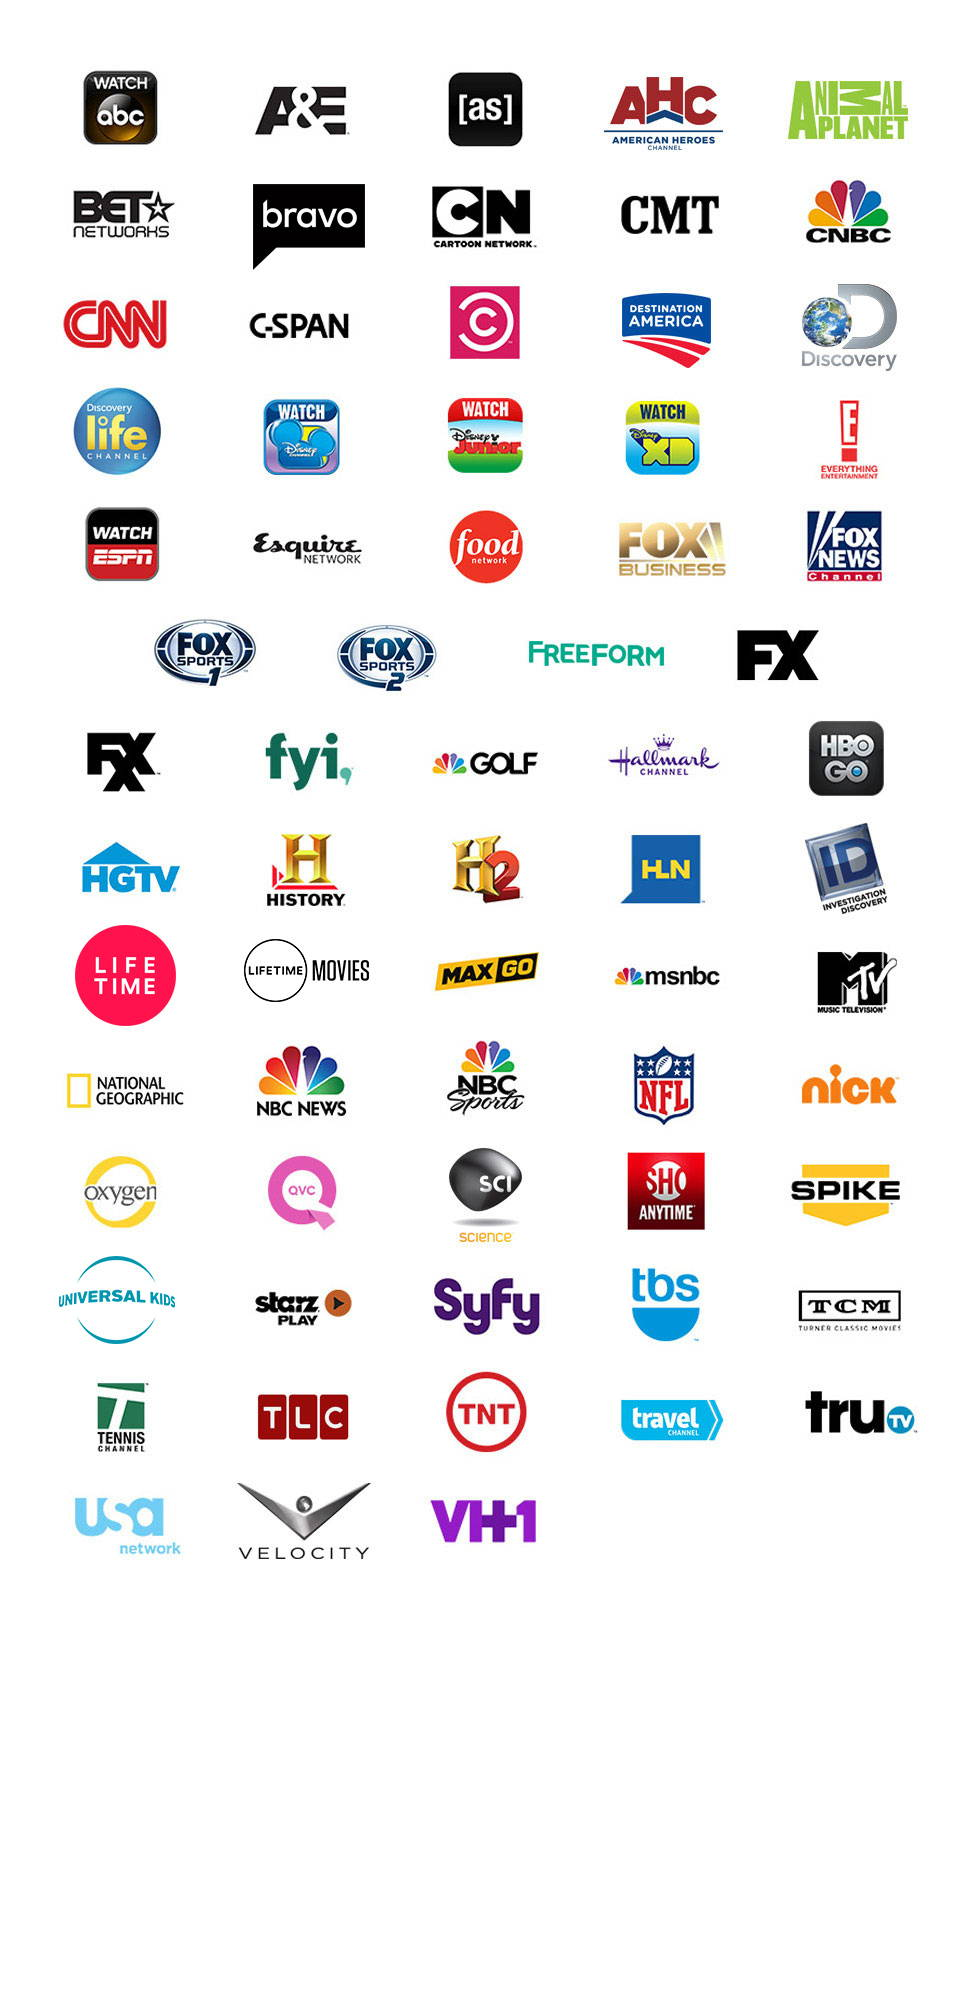 How to choose cable channels